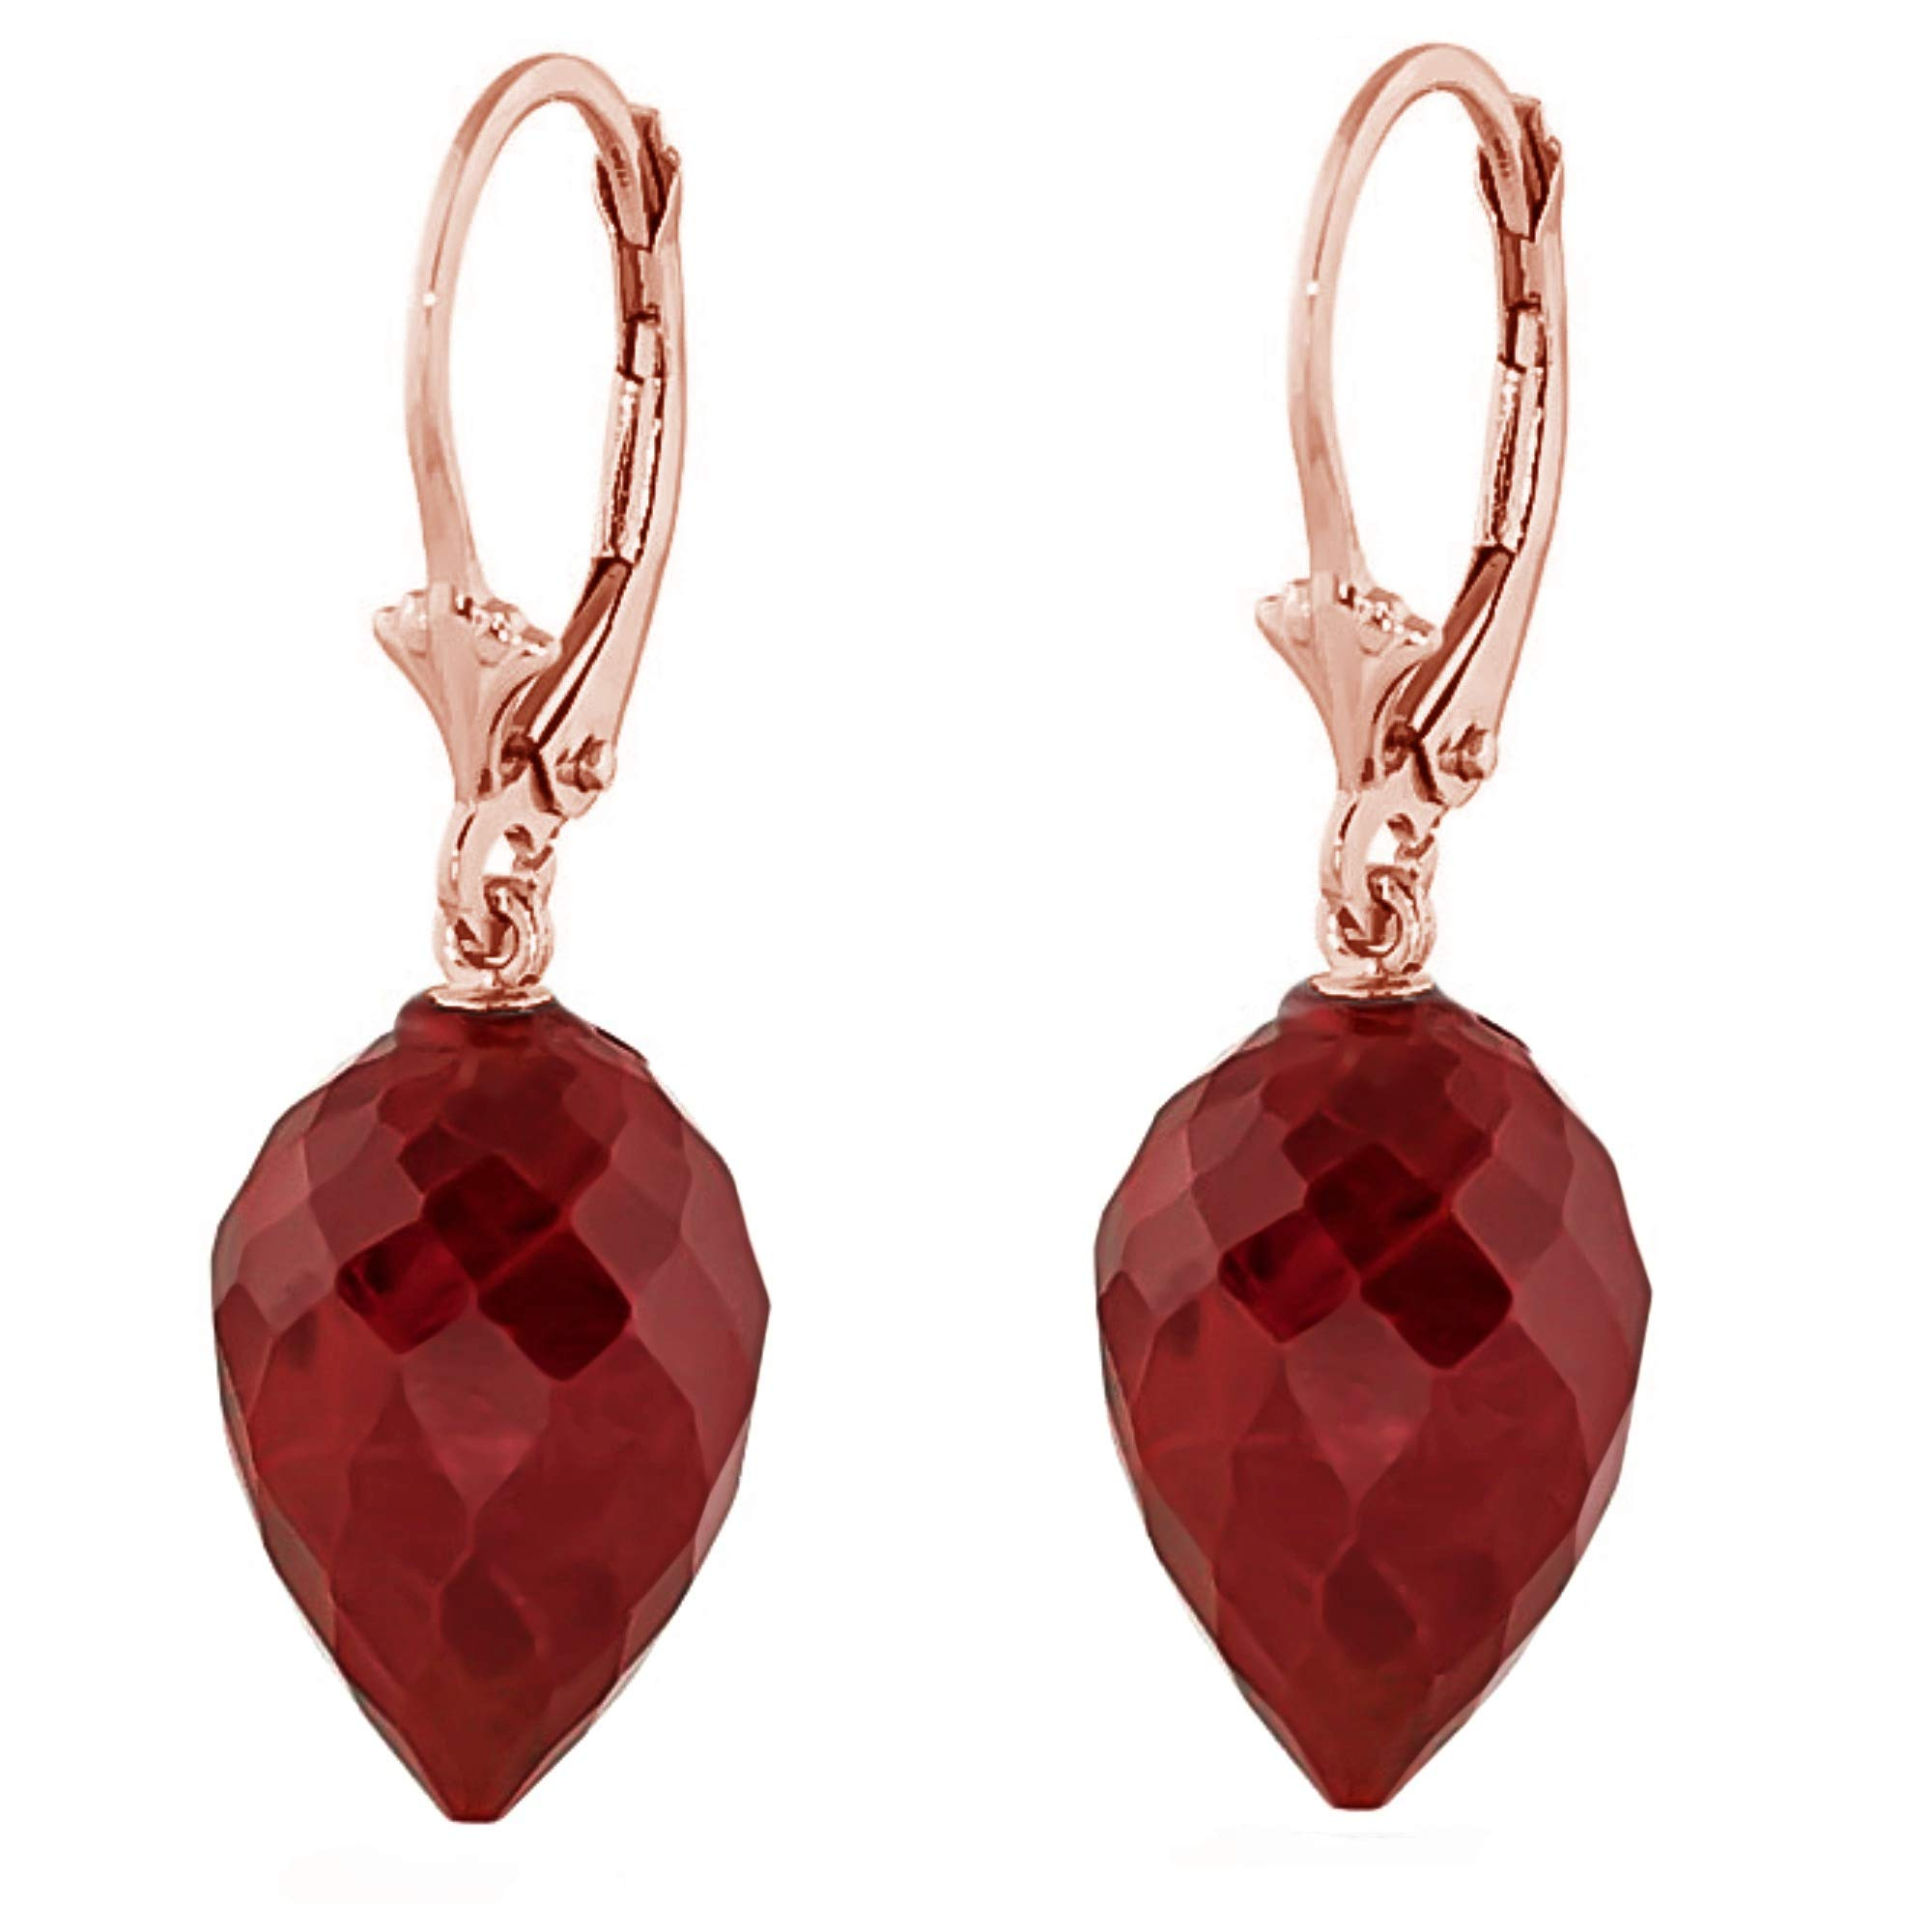 Galaxy Gold 14k Solid Rose Gold Leverback Earrings with Drop Briolette Natural Rubies